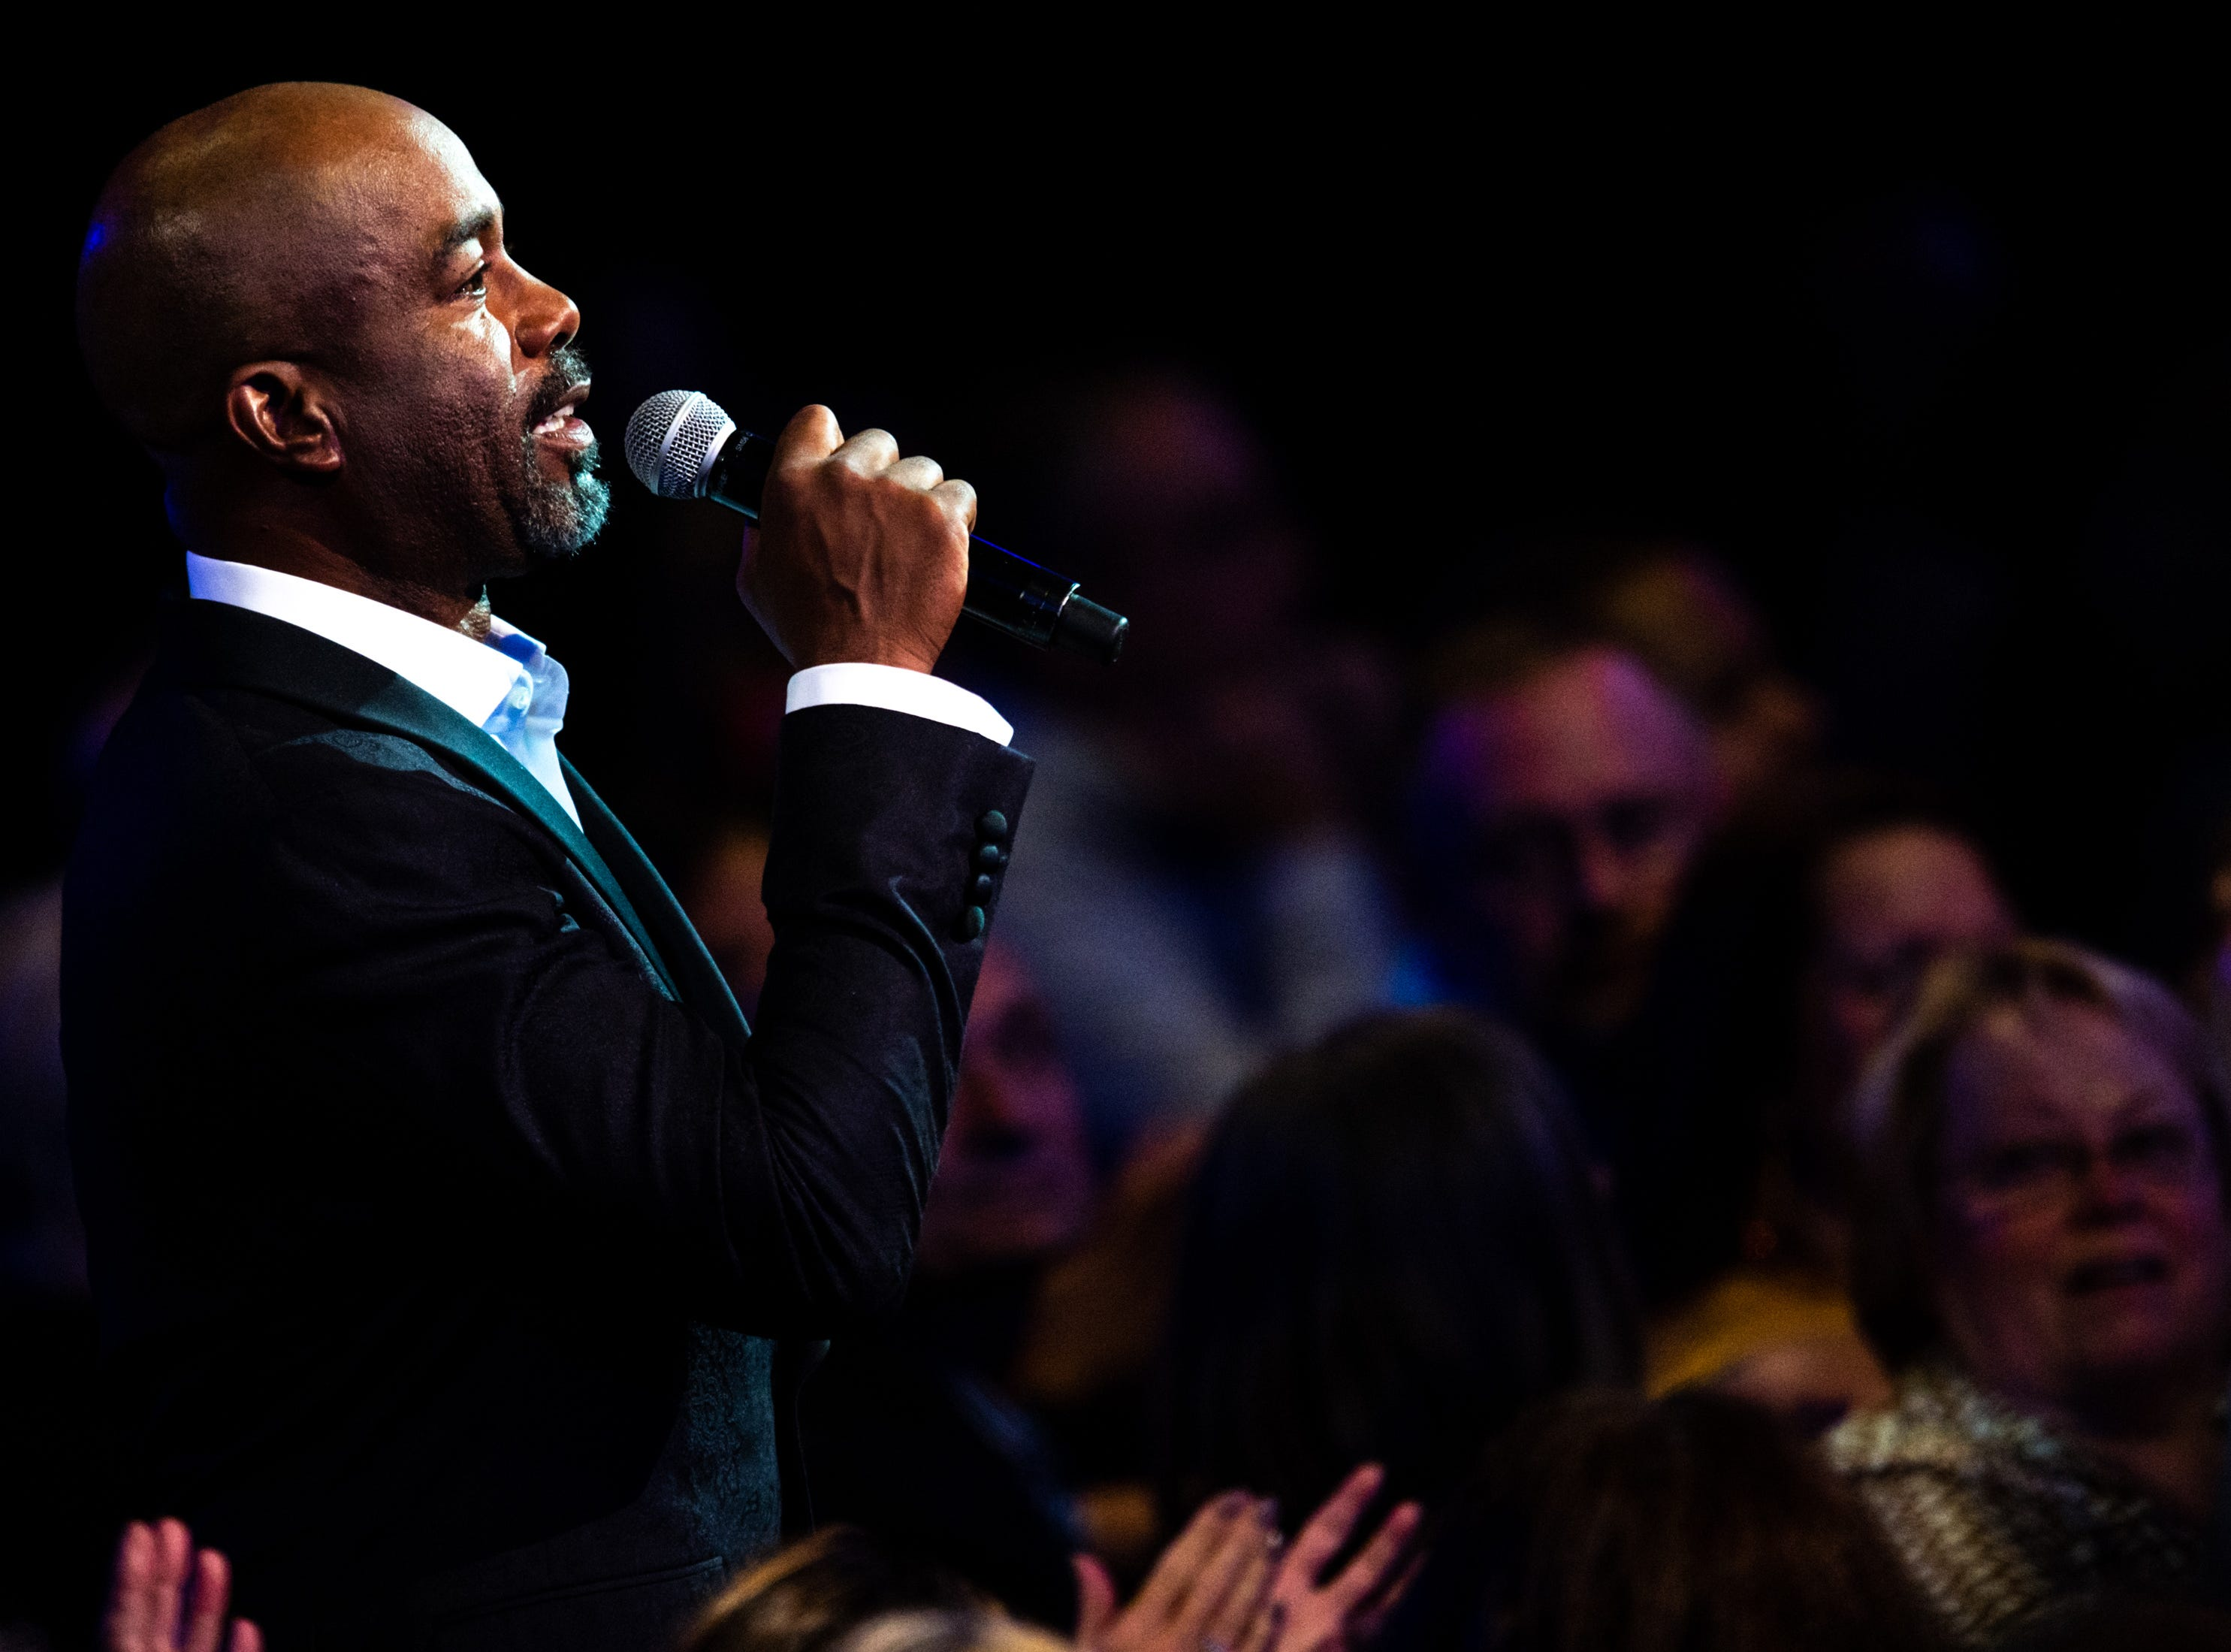 Darius Rucker speaks while hosting the An Opry Salute to Ray Charles concert at The Grand Ole Opry in Nashville, Tenn., Monday, Oct. 8, 2018.